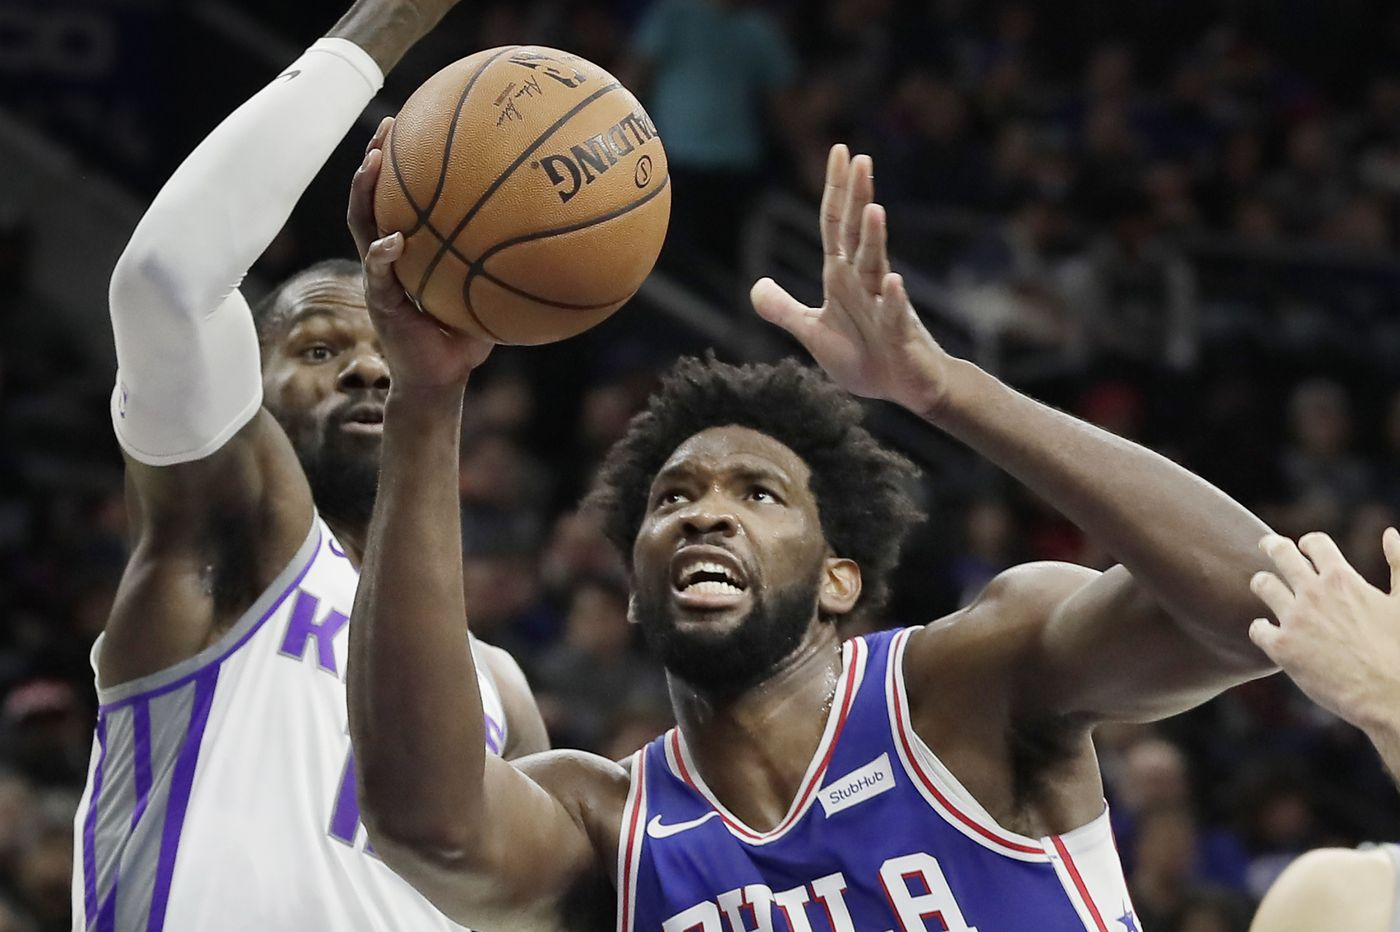 Sixers podcast: Joel Embiid's bounce-back game, Ben Simmons' defense, Matisse Thybulle's dominance, dissing Dallas Cowboys